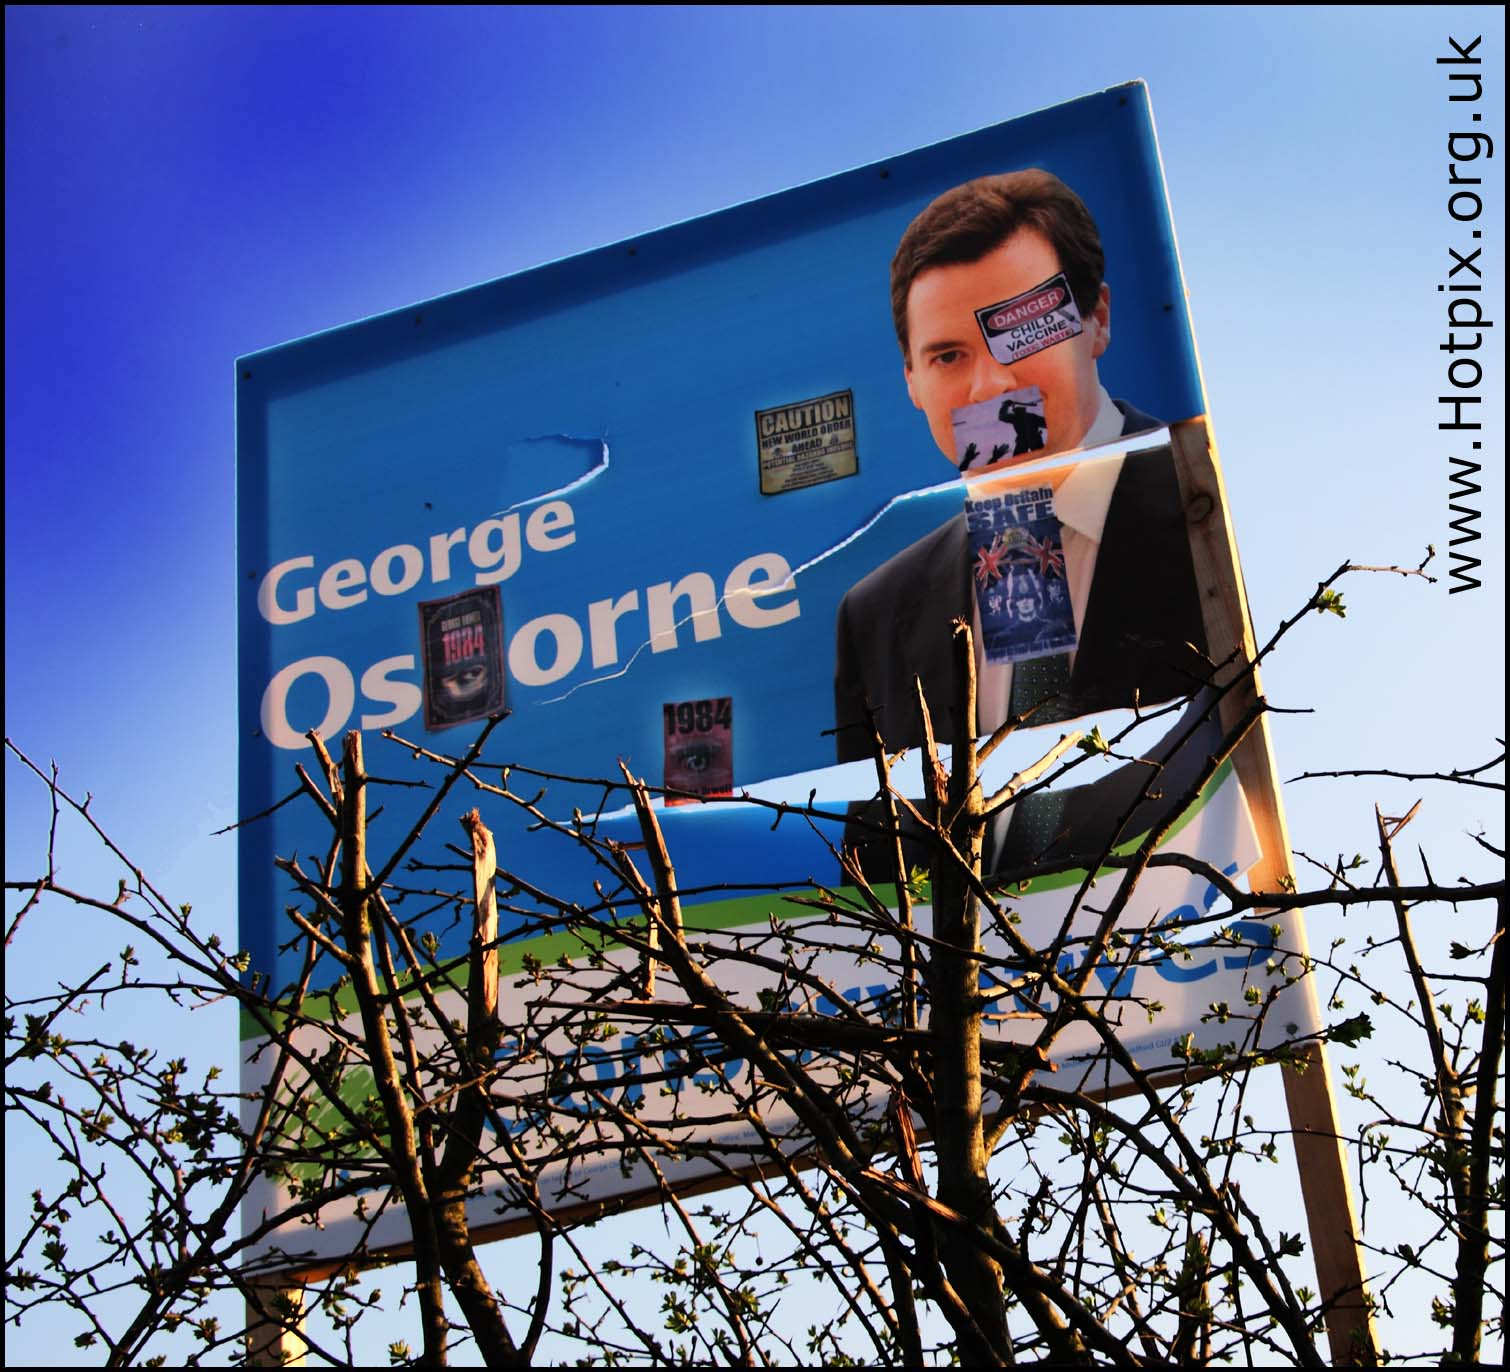 george,osbourne,chancellor,shadow,opposition,manchester,UK,tatton,knutsford,tory,candidate,conservative,sign,general,election,2010,may,6th,true,blue,majority,cheshire,electorial,parliament,westminster,government,britain,british,politition,politicion,politic,politics,rich,wealthy,Chelford,ozzy,ozzi,peover,toft,legh,high,alderley,edge,handforth,mobberley,wilmslow,orwell,George Orwell,1984,newworldorderahead,new,world,order,ahead,damage,dissobedience,civil,vote,voting,voter,poll,polling,GB,booth,station,Labour,Liberal,Democrats,Green,Party,libdems,lib,dems,highway,road